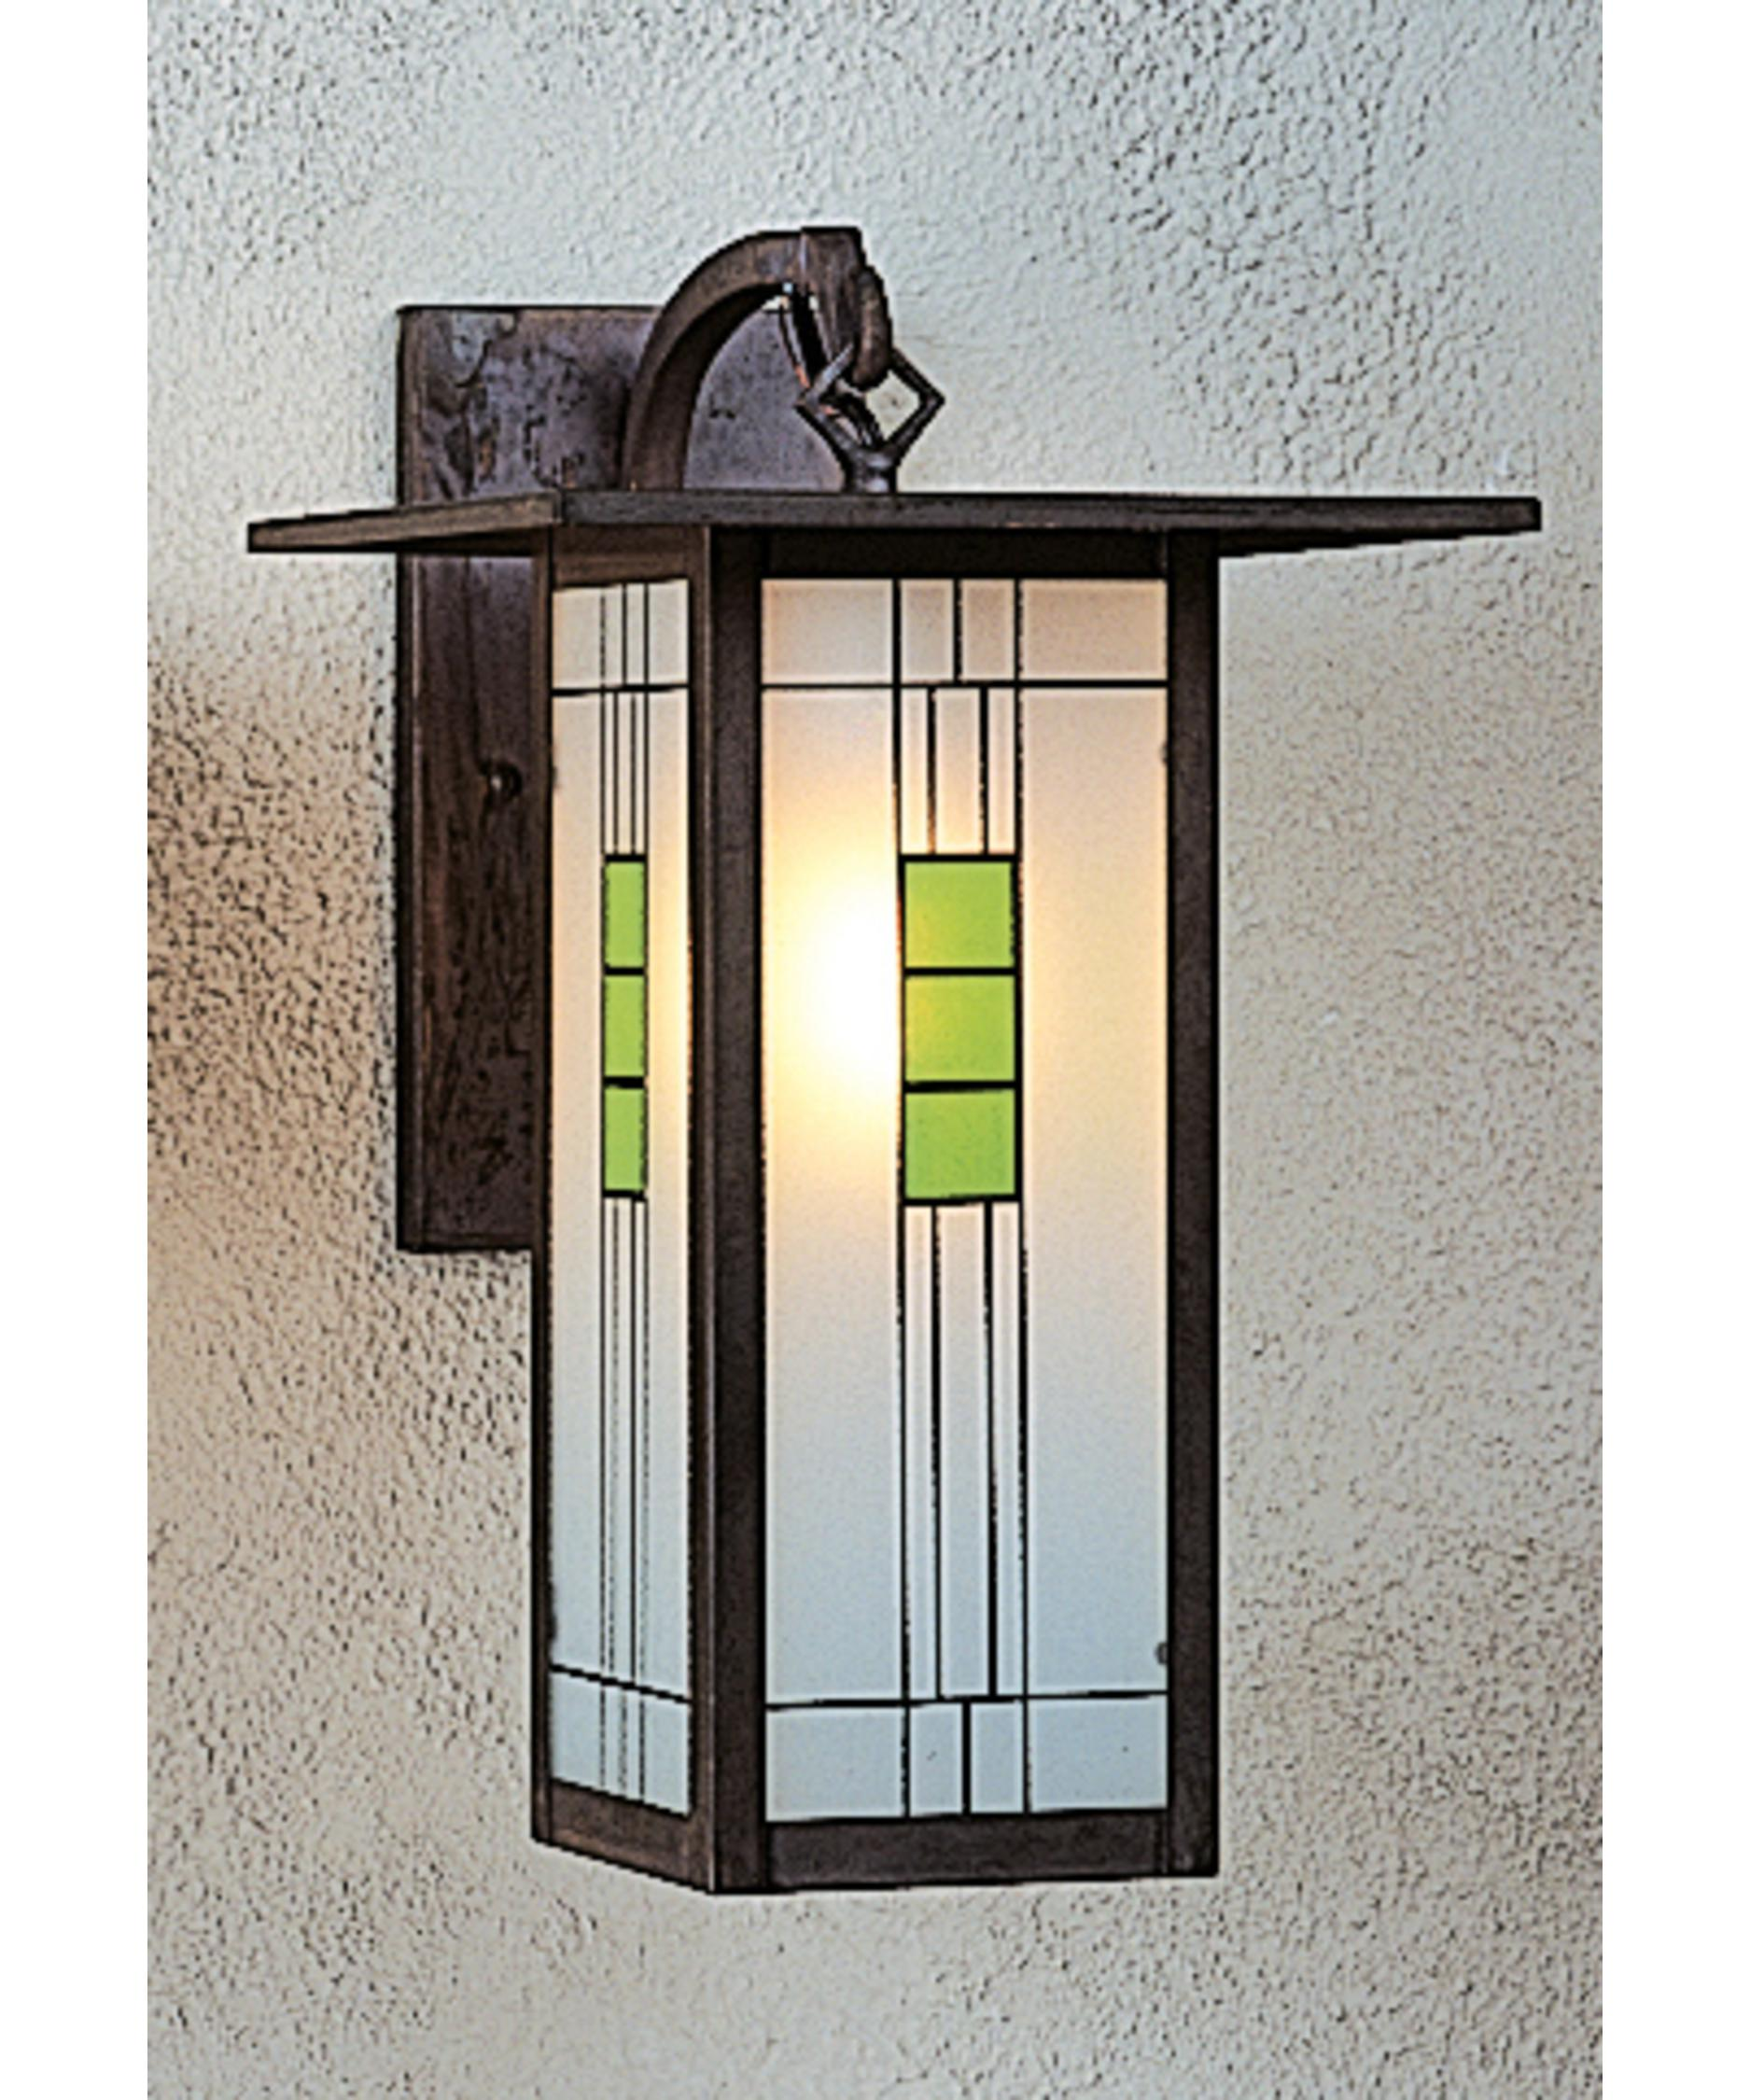 Shown In Mission Brown Finish And Green Black Combination Glass